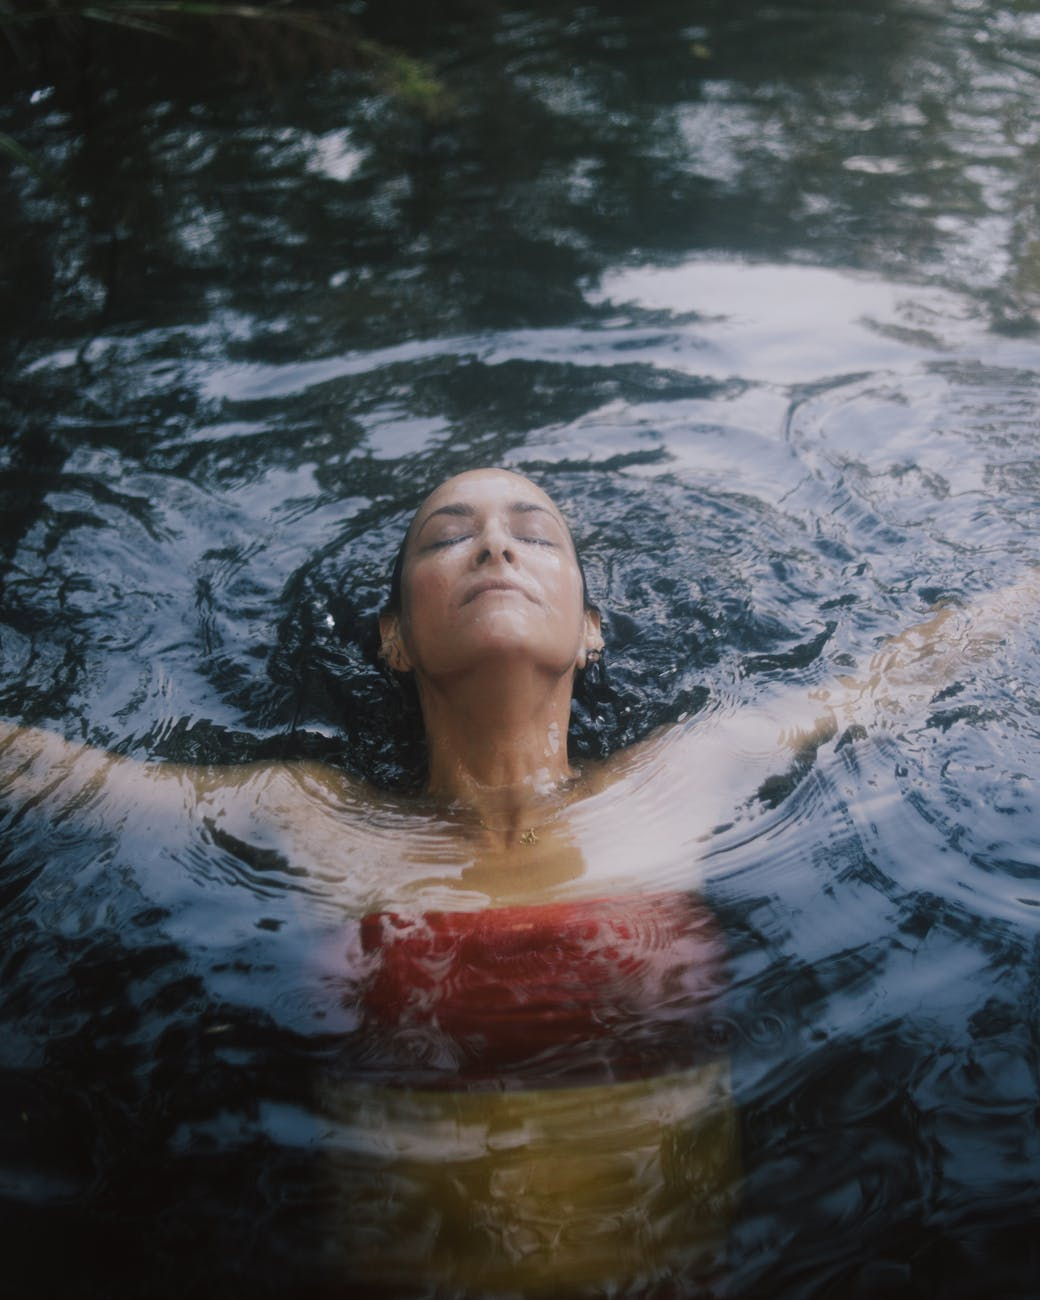 Woman in Red Tube Top in Swimming in water